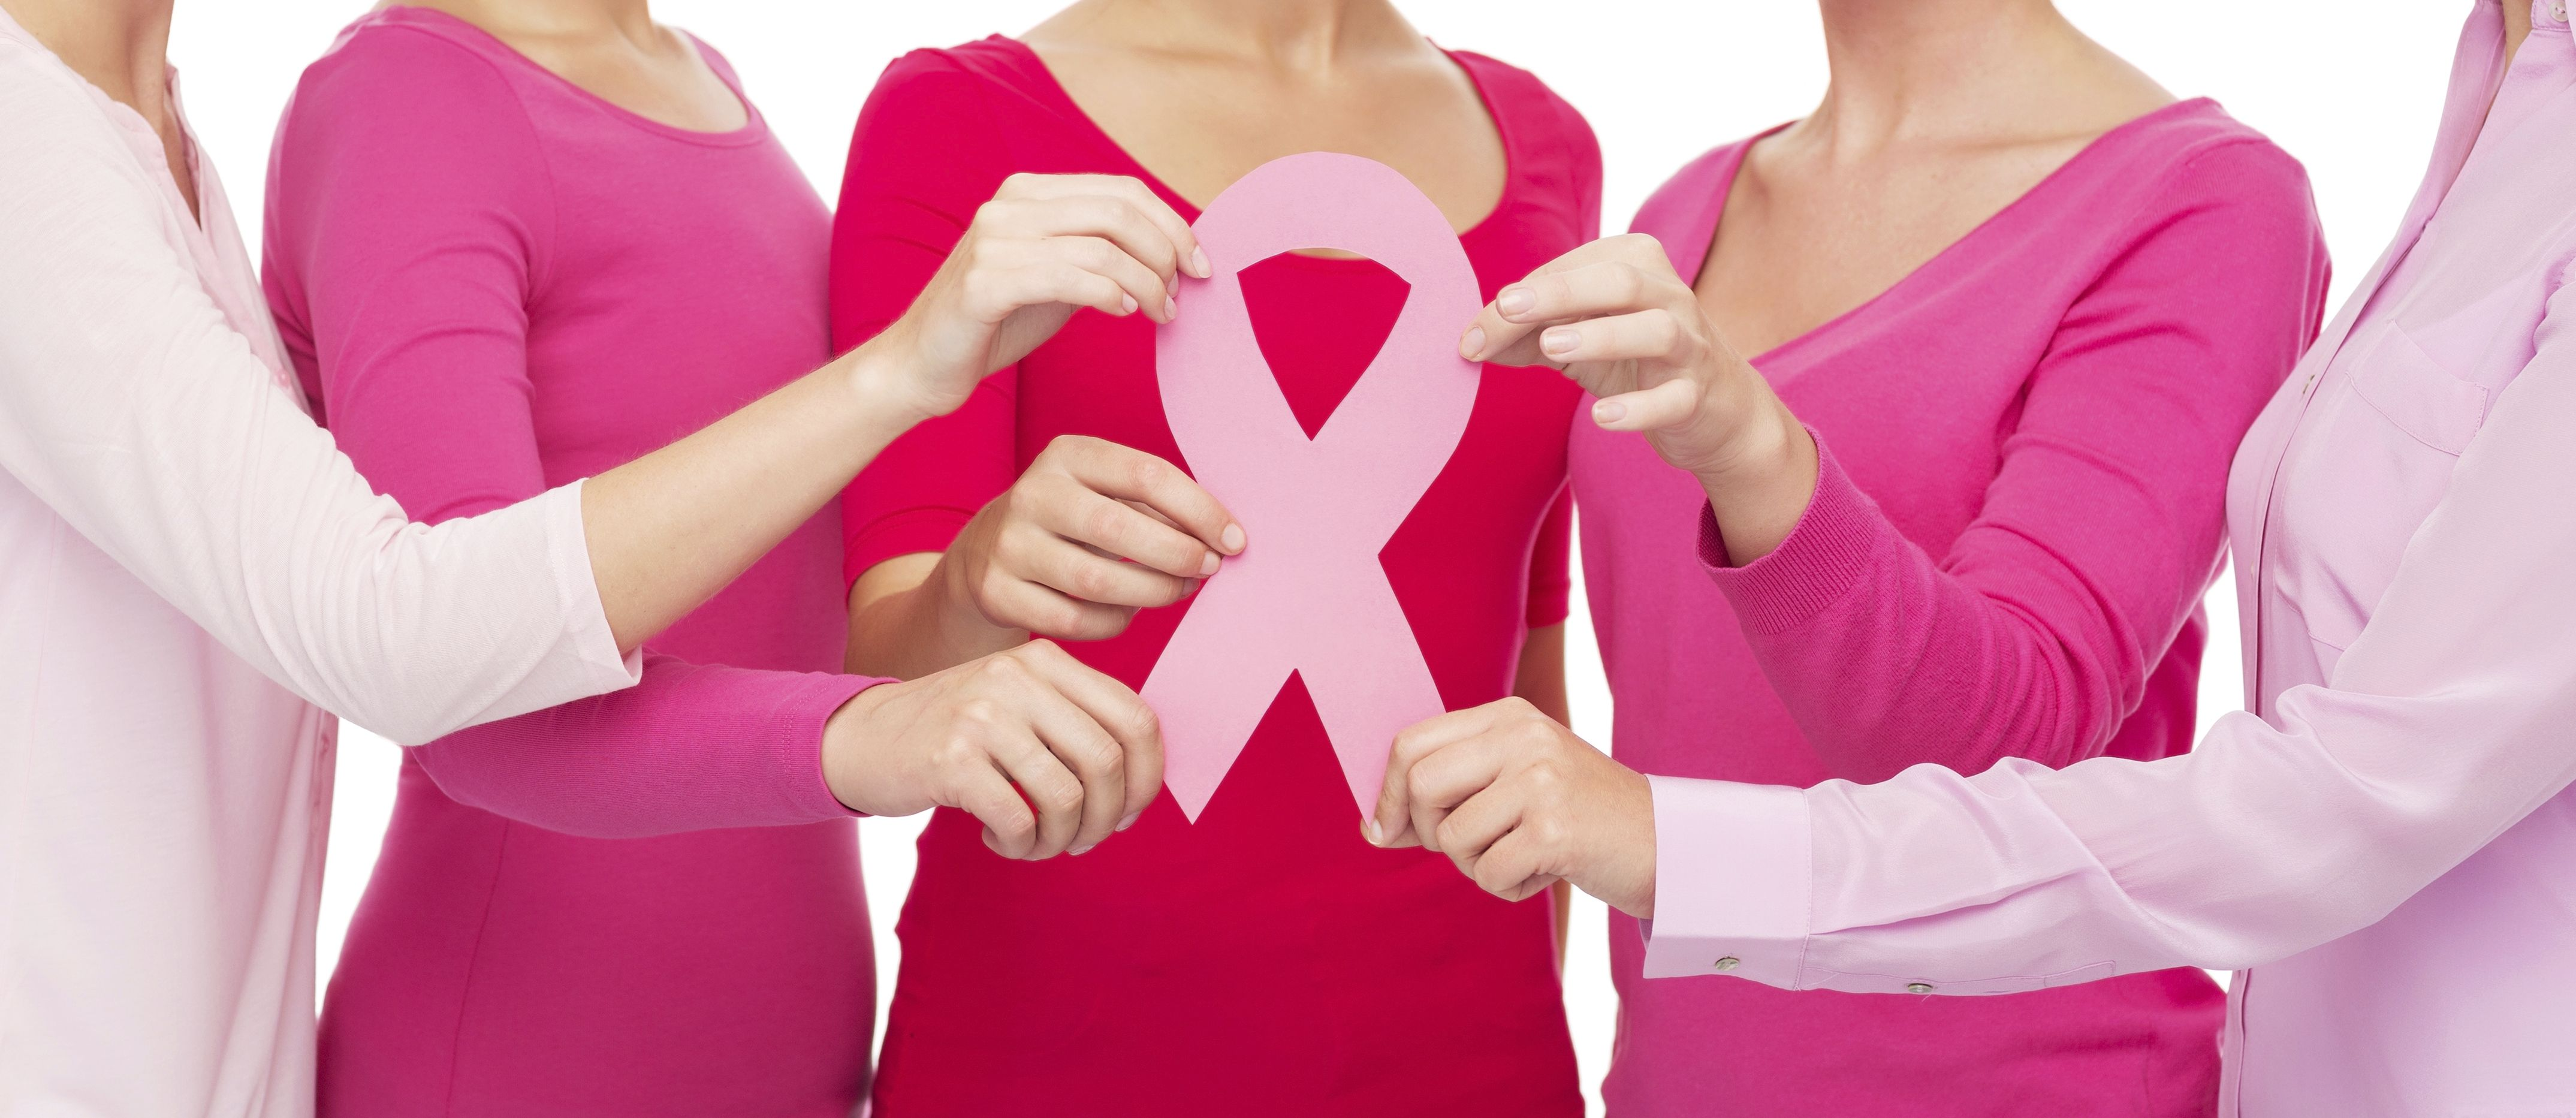 Prevalence of Breast Cancer in Pakistan - Fact Scholar